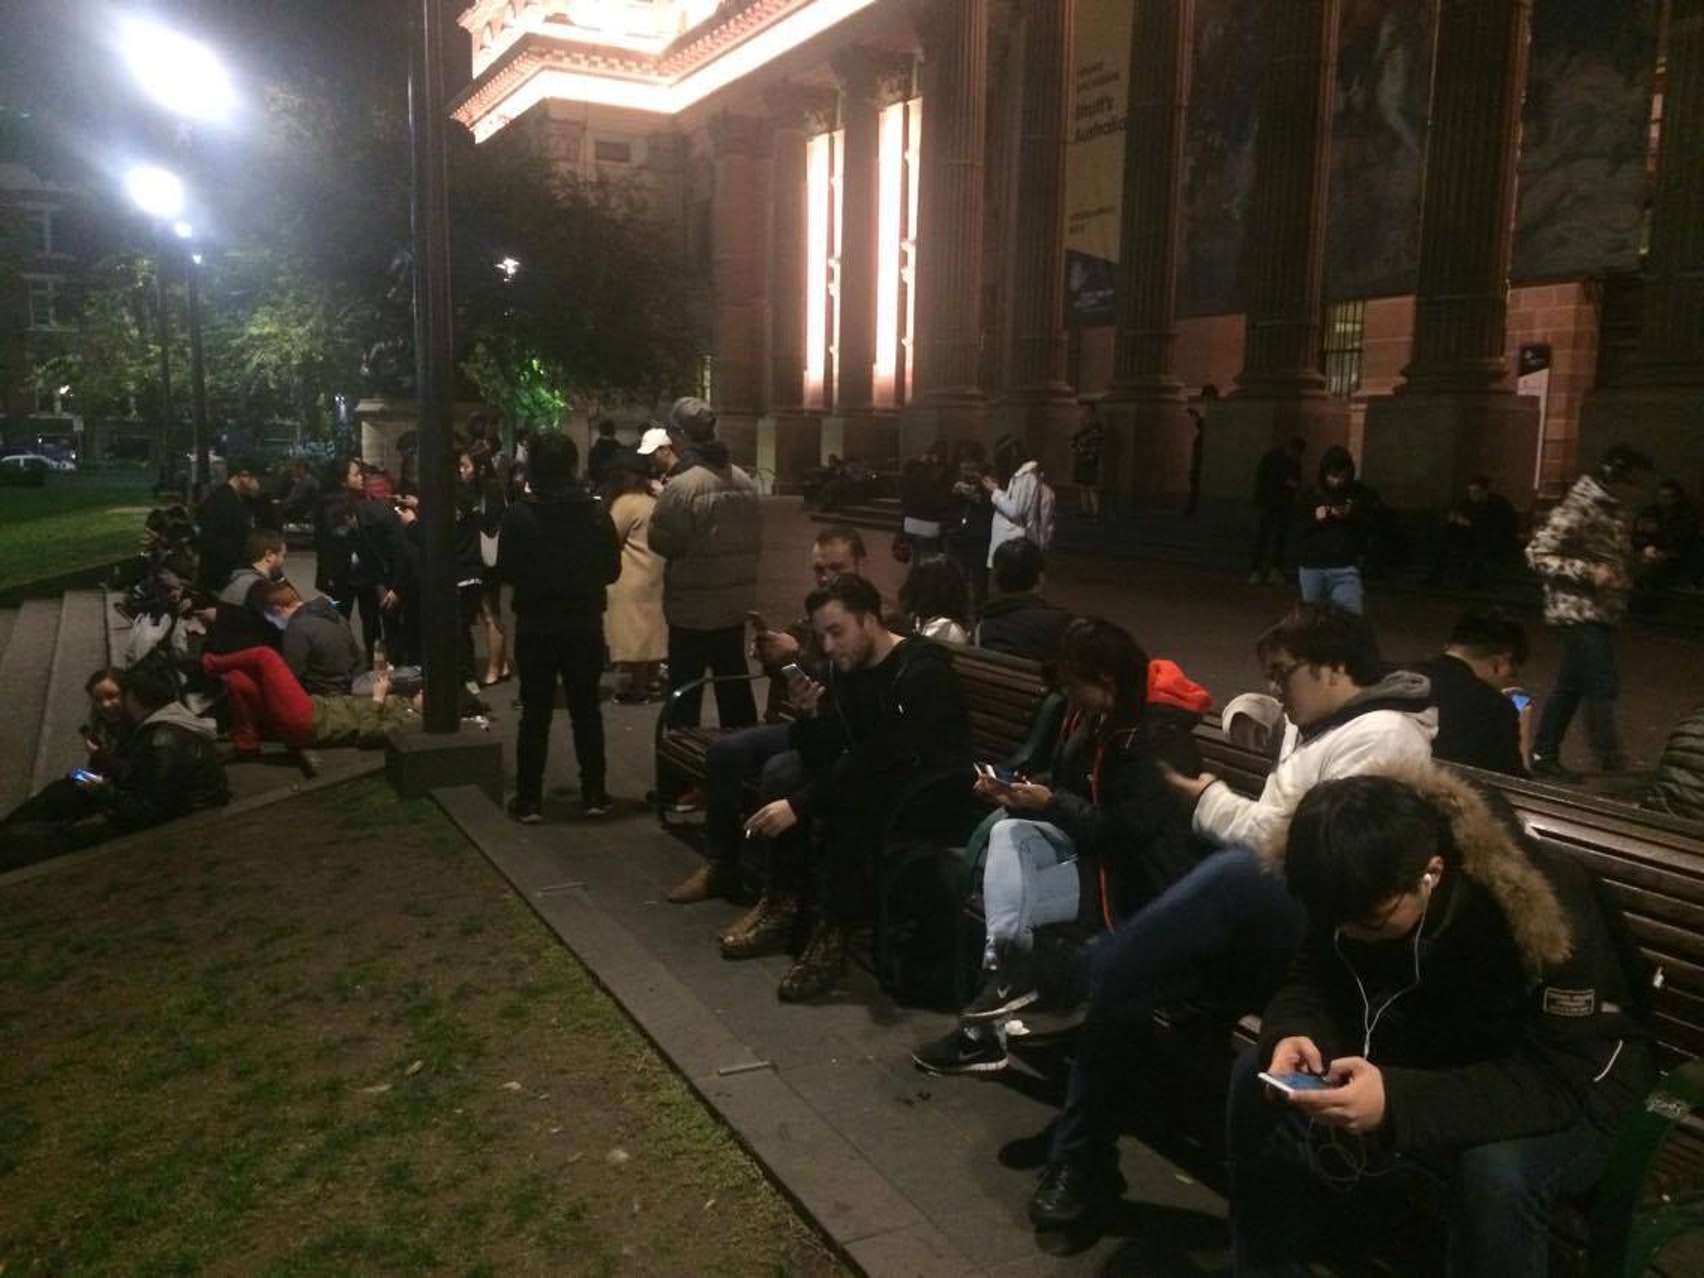 Friday night at Melbourne Central in Australia, with over a dozen people seen playing 'Pokemon GO.' Taken by user Haloi.